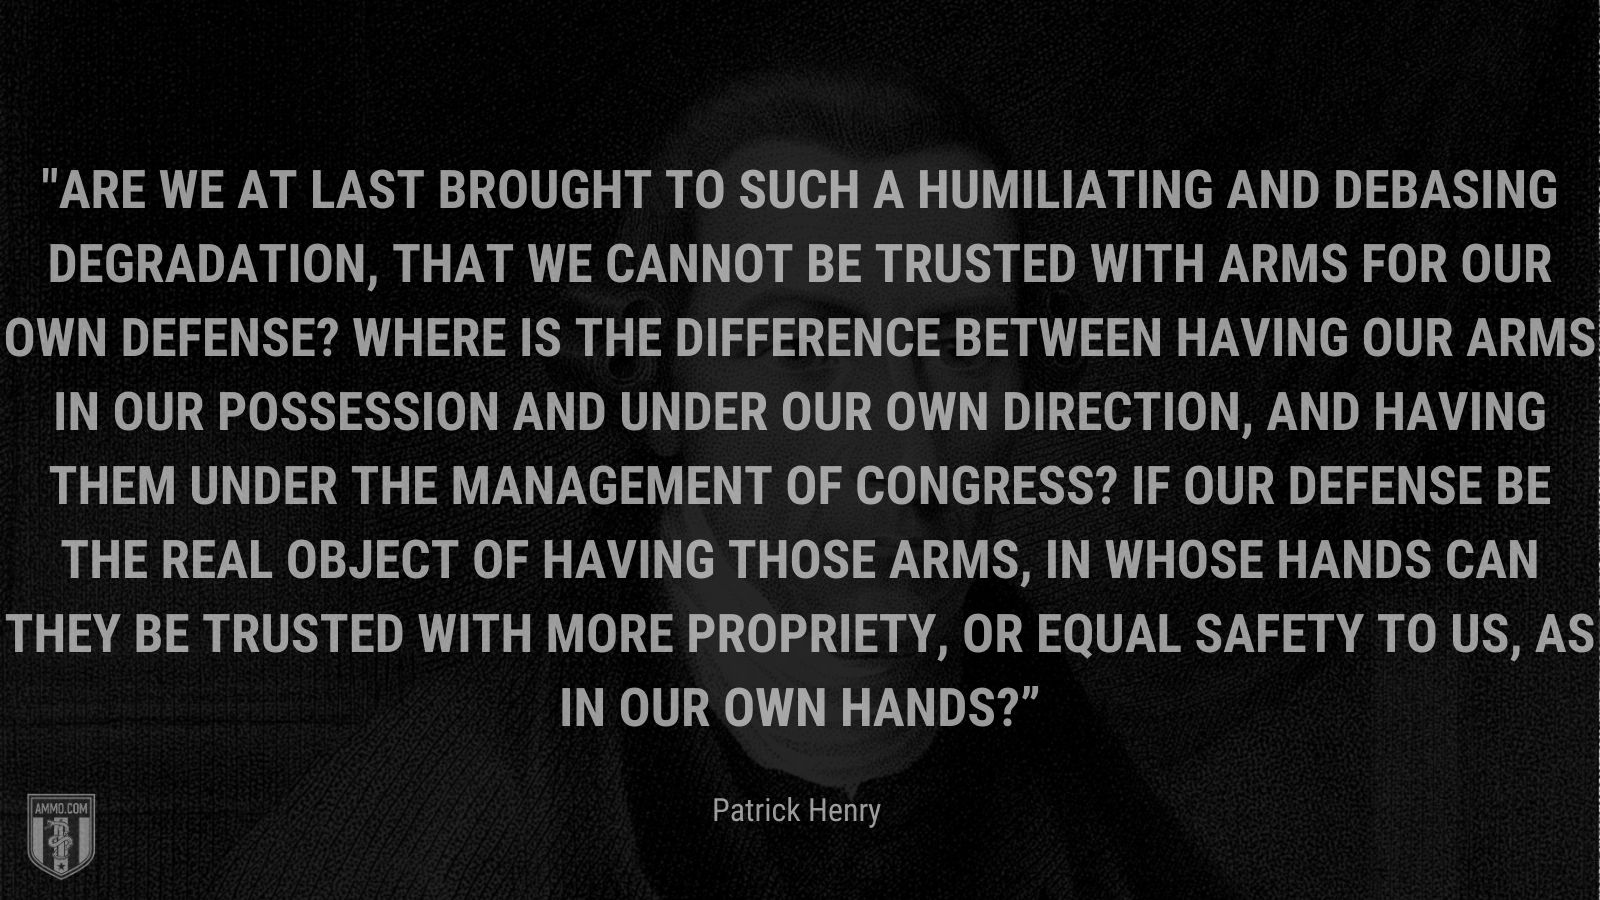 """""""Are we at last brought to such a humiliating and debasing degradation, that we cannot be trusted with arms for our own defense? Where is the difference between having our arms in our possession and under our own direction, and having them under the management of Congress? If our defense be the real object of having those arms, in whose hands can they be trusted with more propriety, or equal safety to us, as in our own hands?"""" - Patrick Henry"""